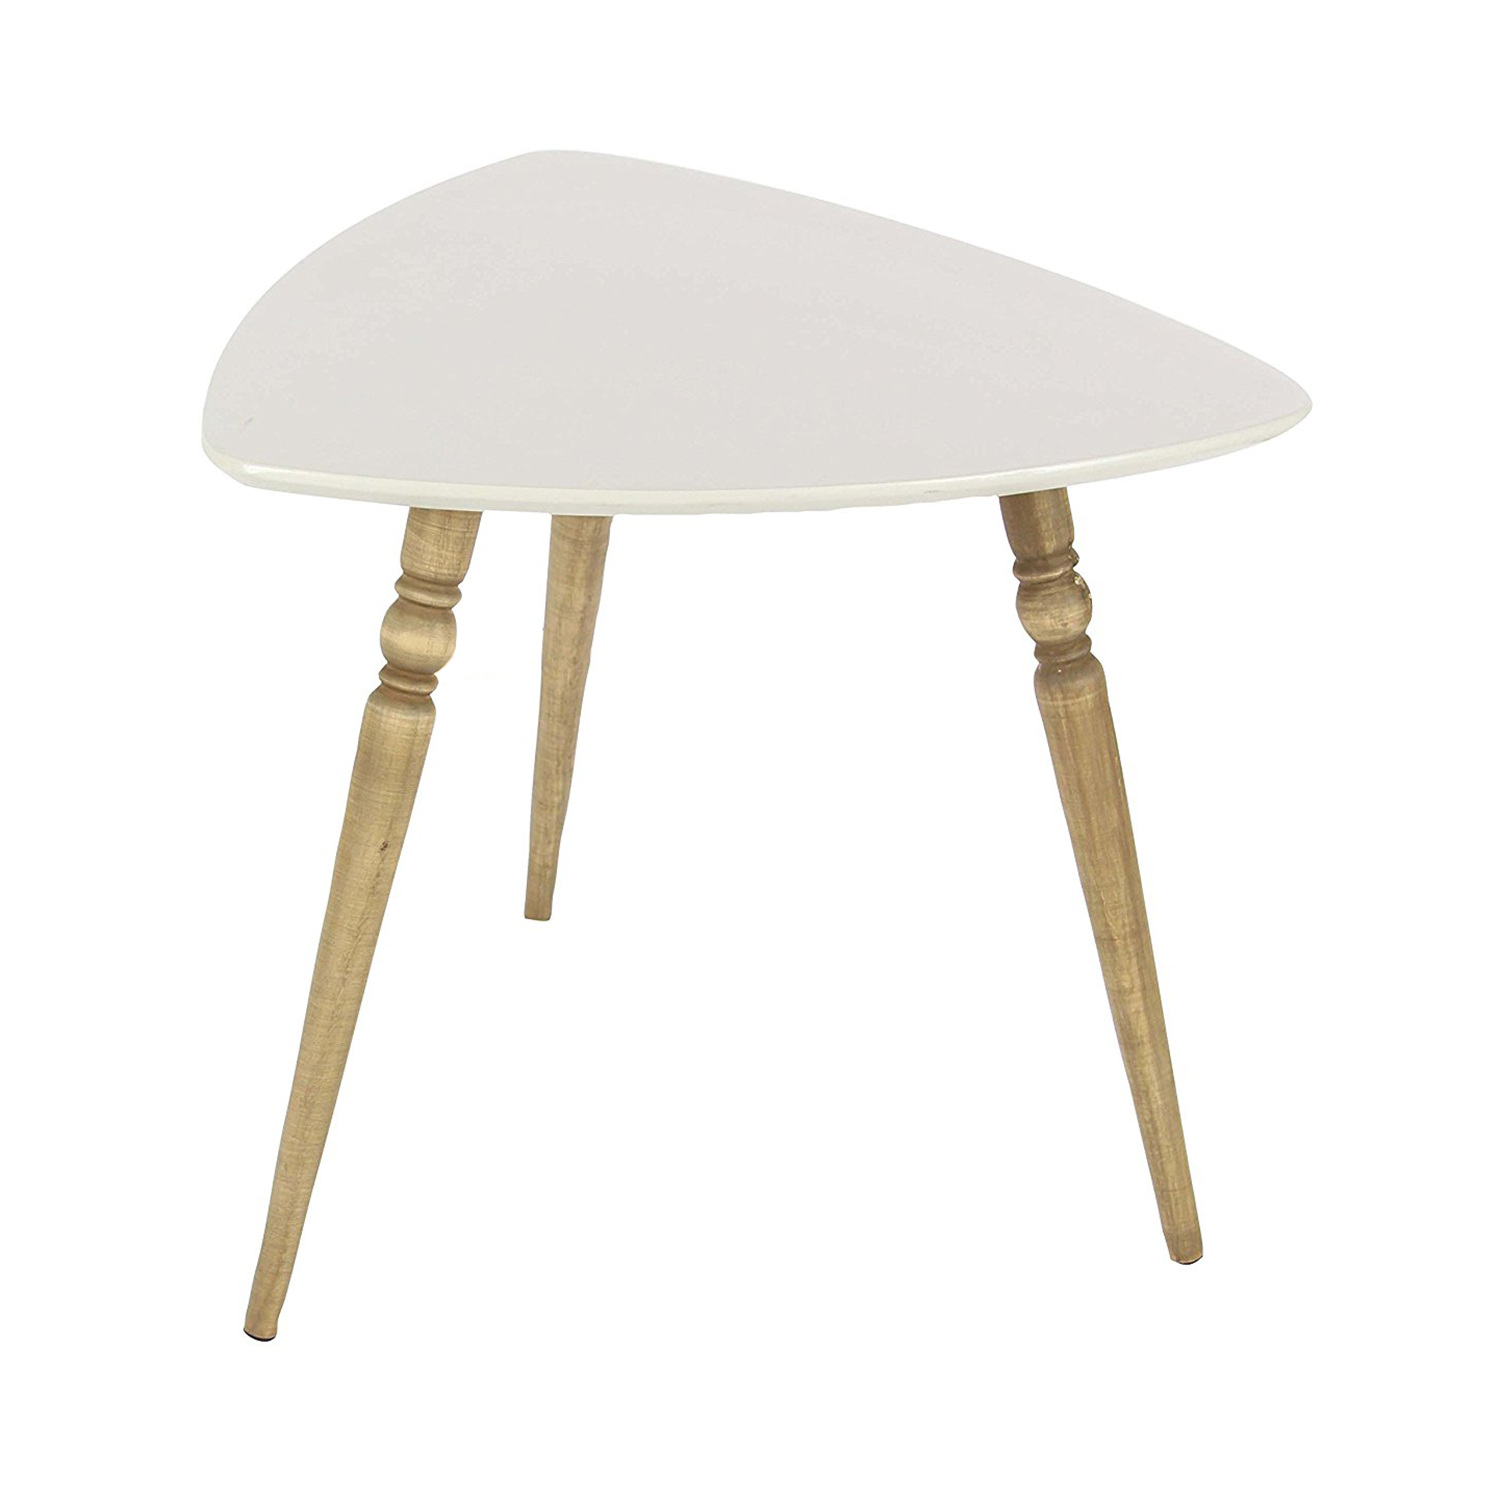 deco rounded triangle white matte finish wooden accent side end outdoor wood table stand astoria grand bedroom furniture room essentials patio foyer chest ott top metal door